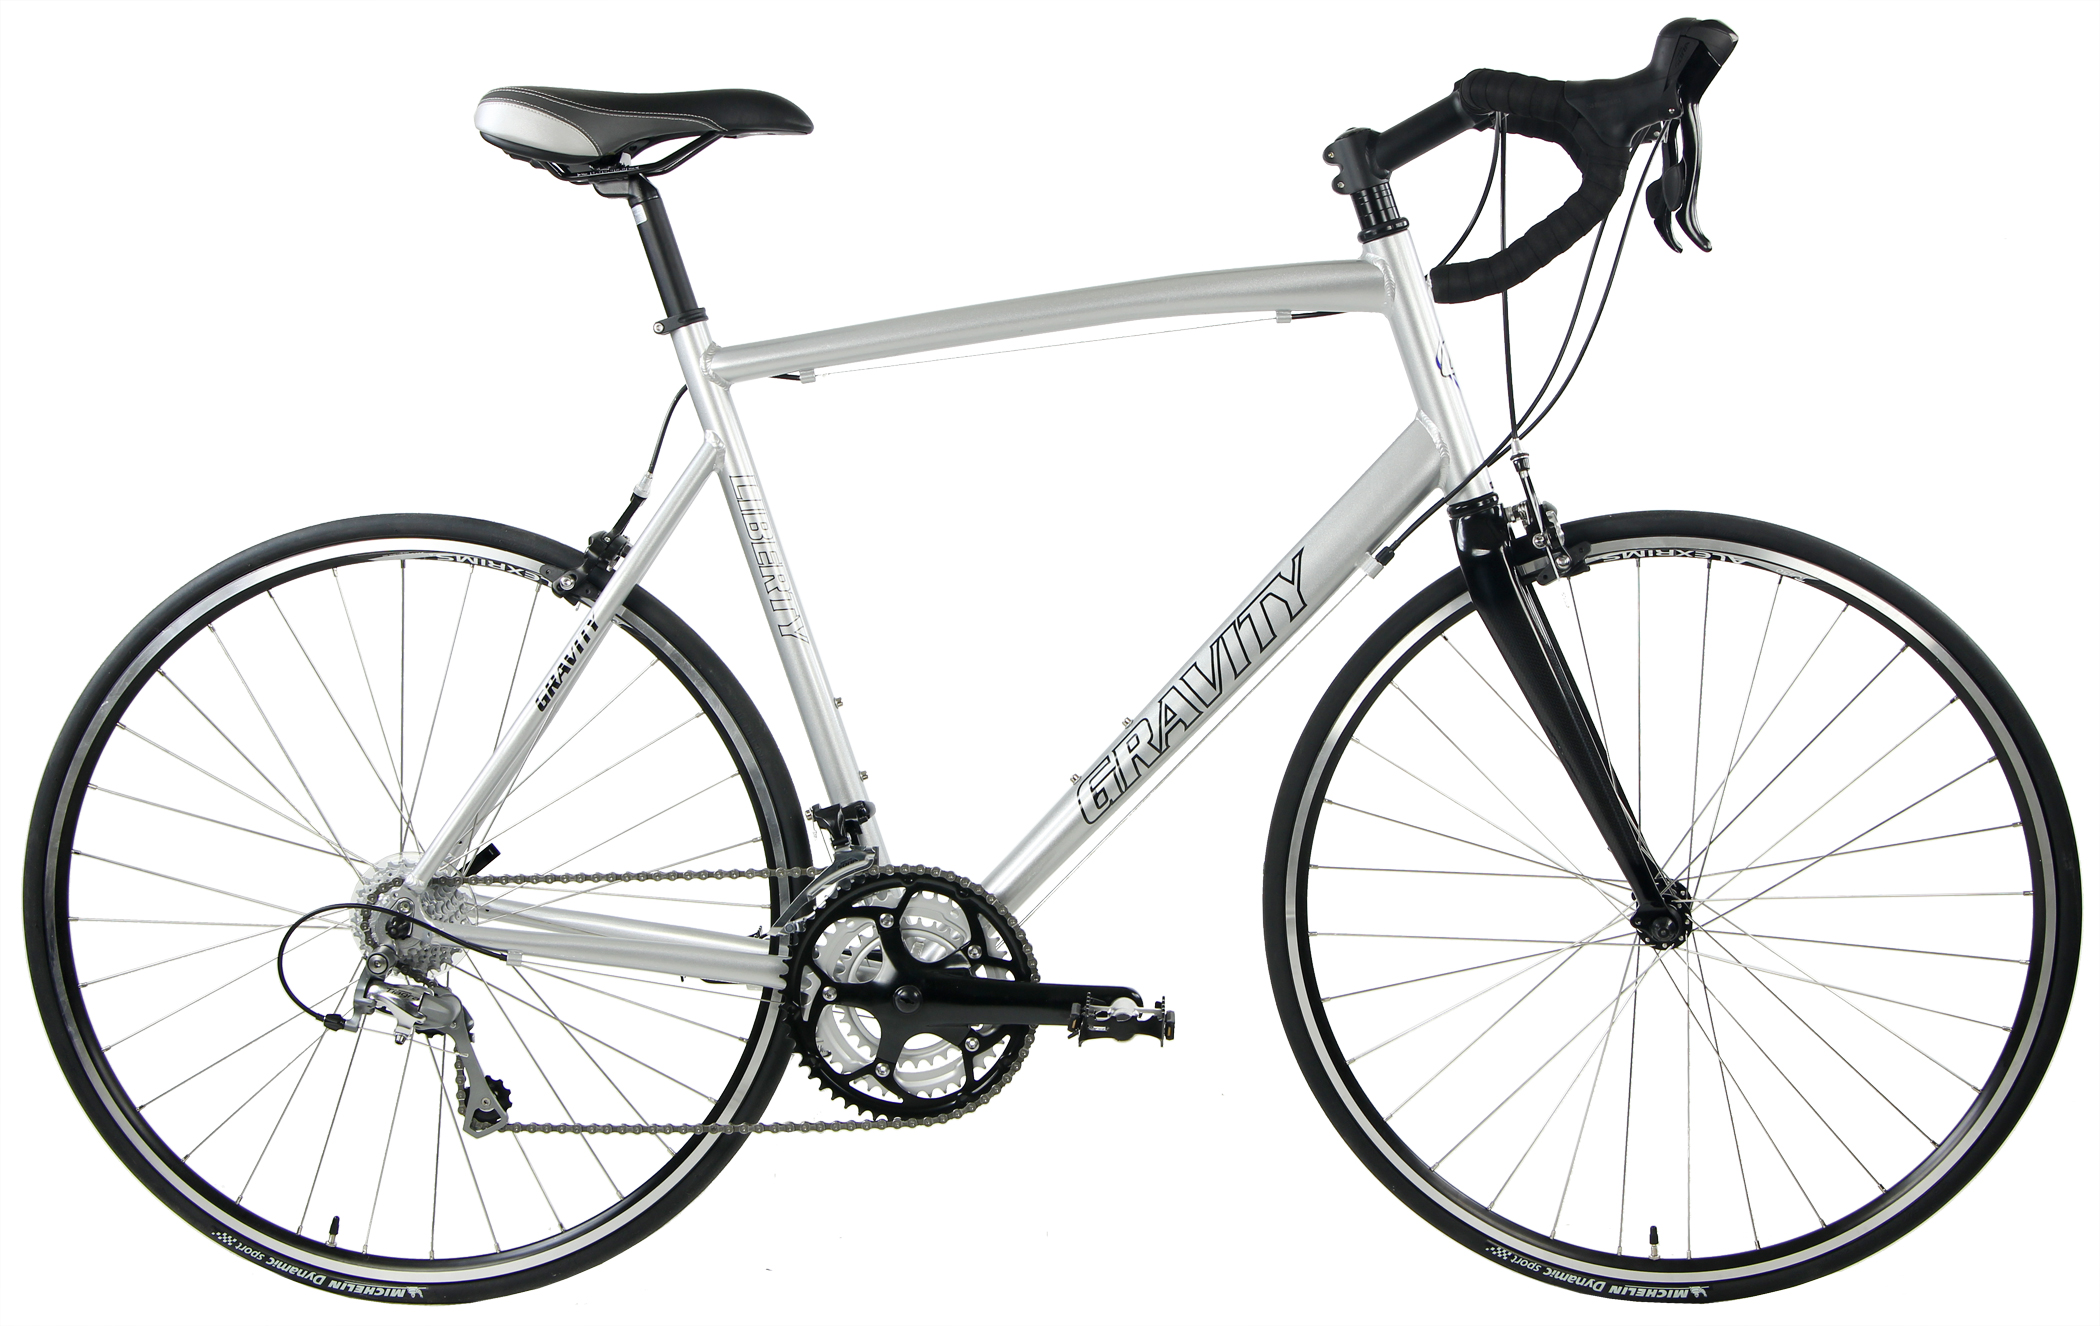 Gravity Liberty 3 Road Bike Review